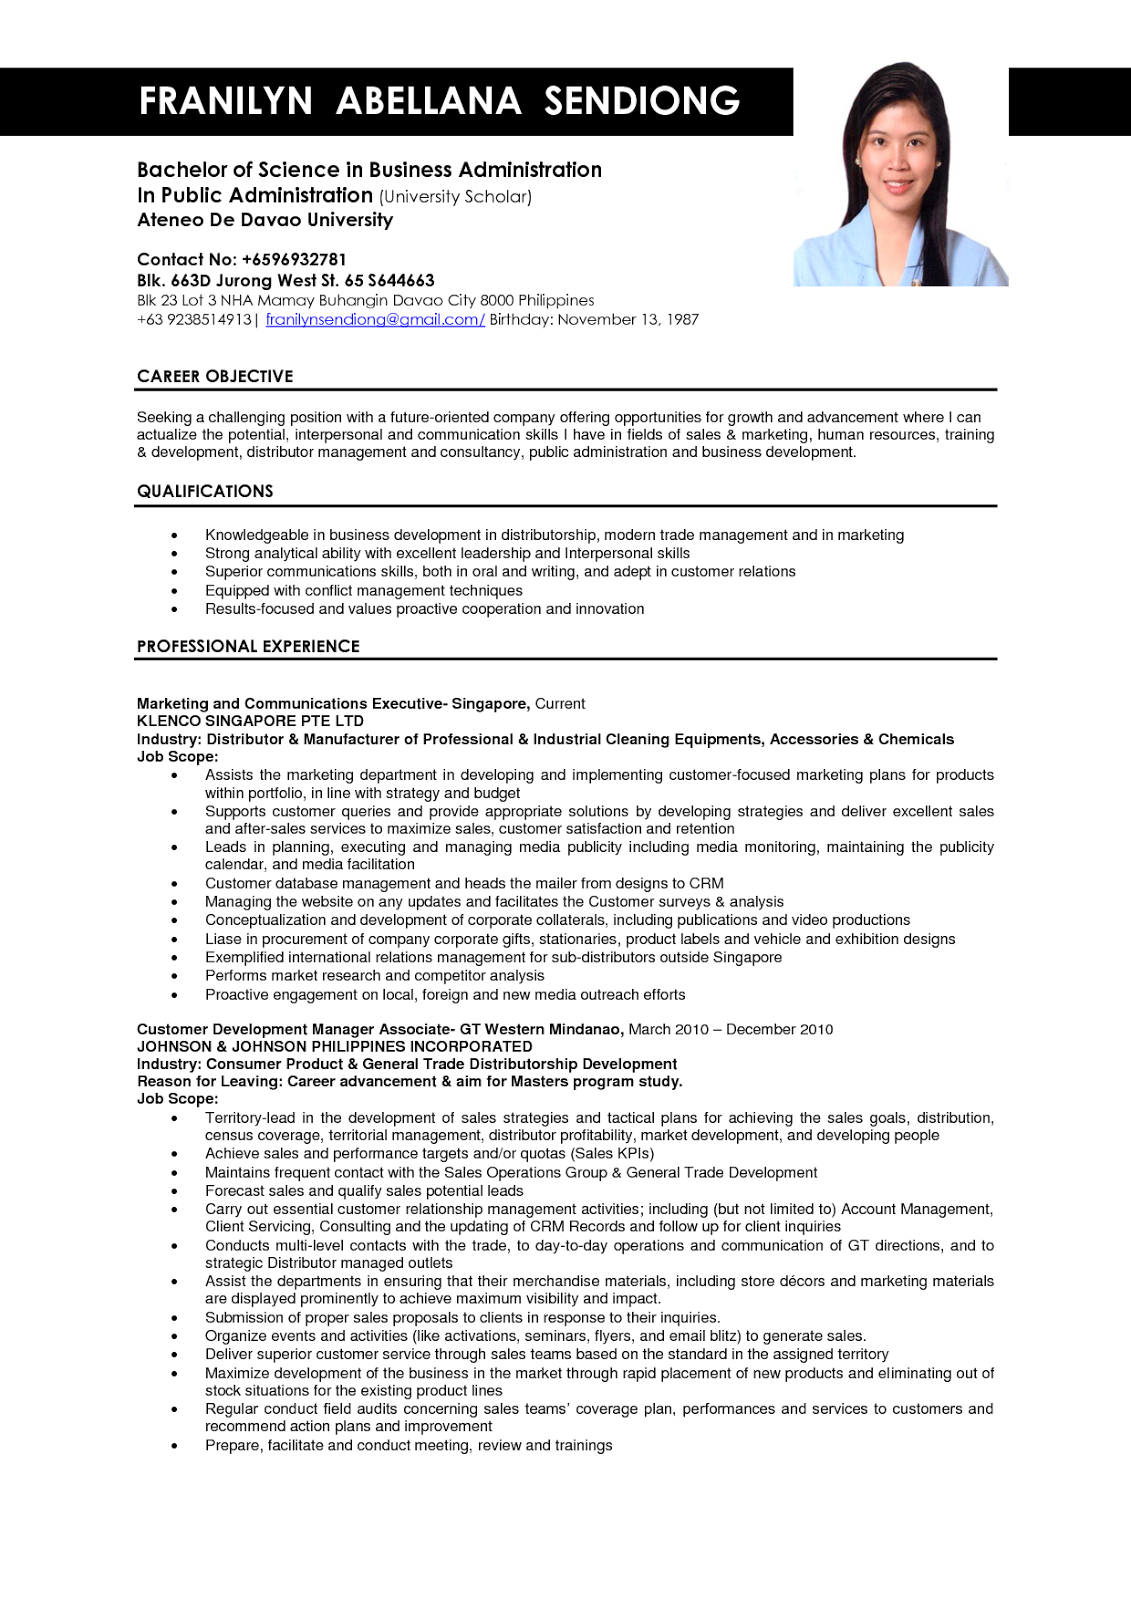 resume format sample for job application